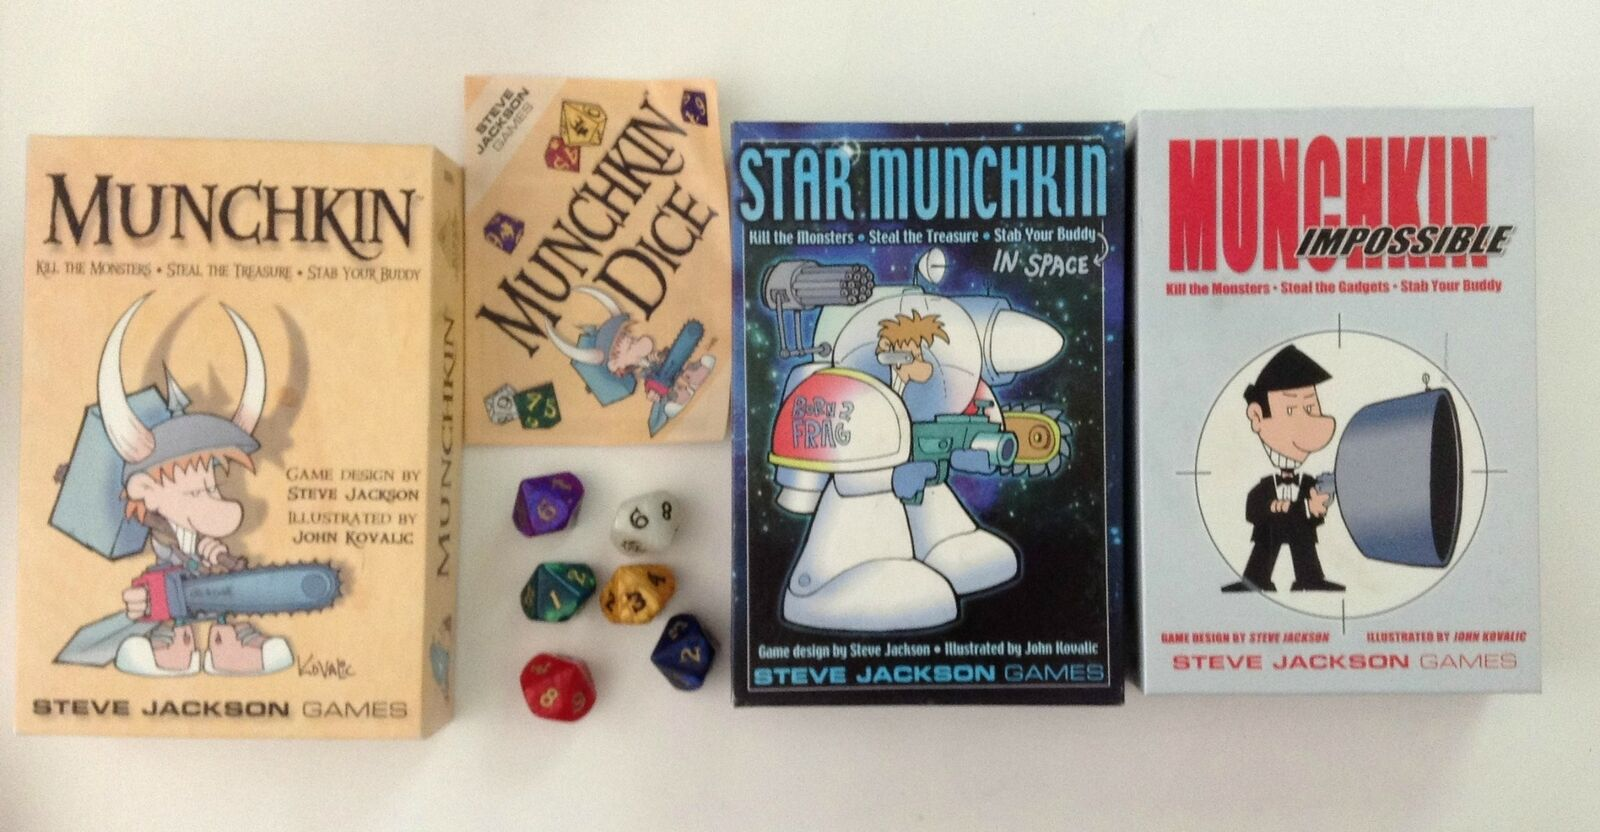 3 Munchkin Games + Rare 10 Sided Dice Set + Original Cards